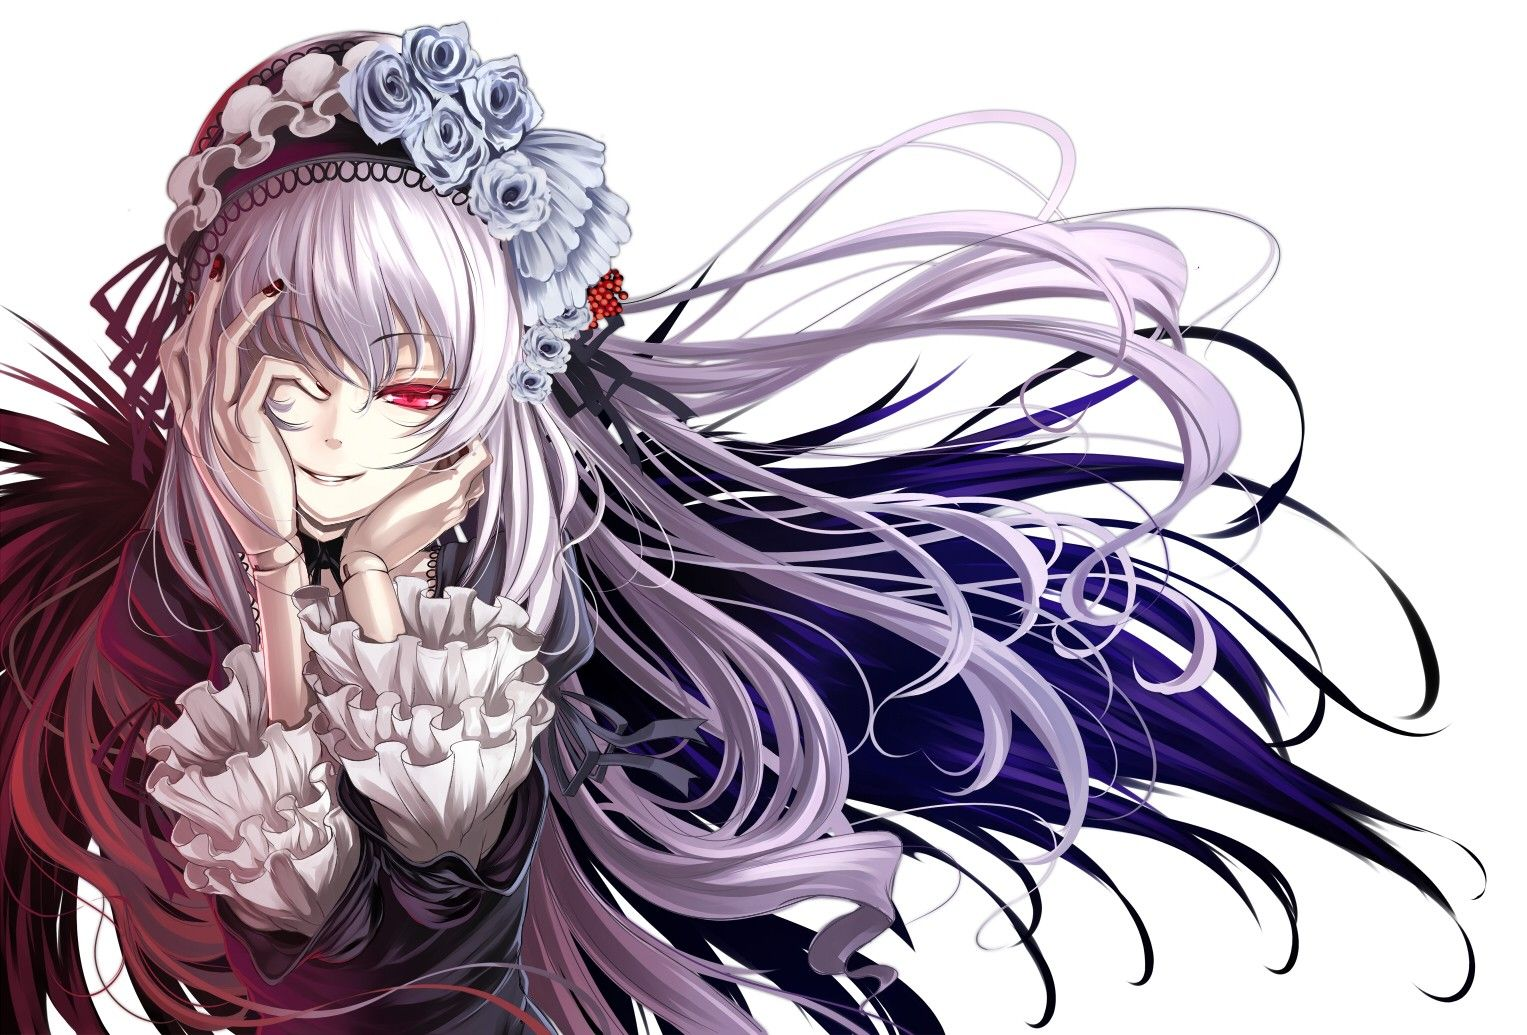 Gothic Anime Wallpapers - Top Free Gothic Anime Backgrounds